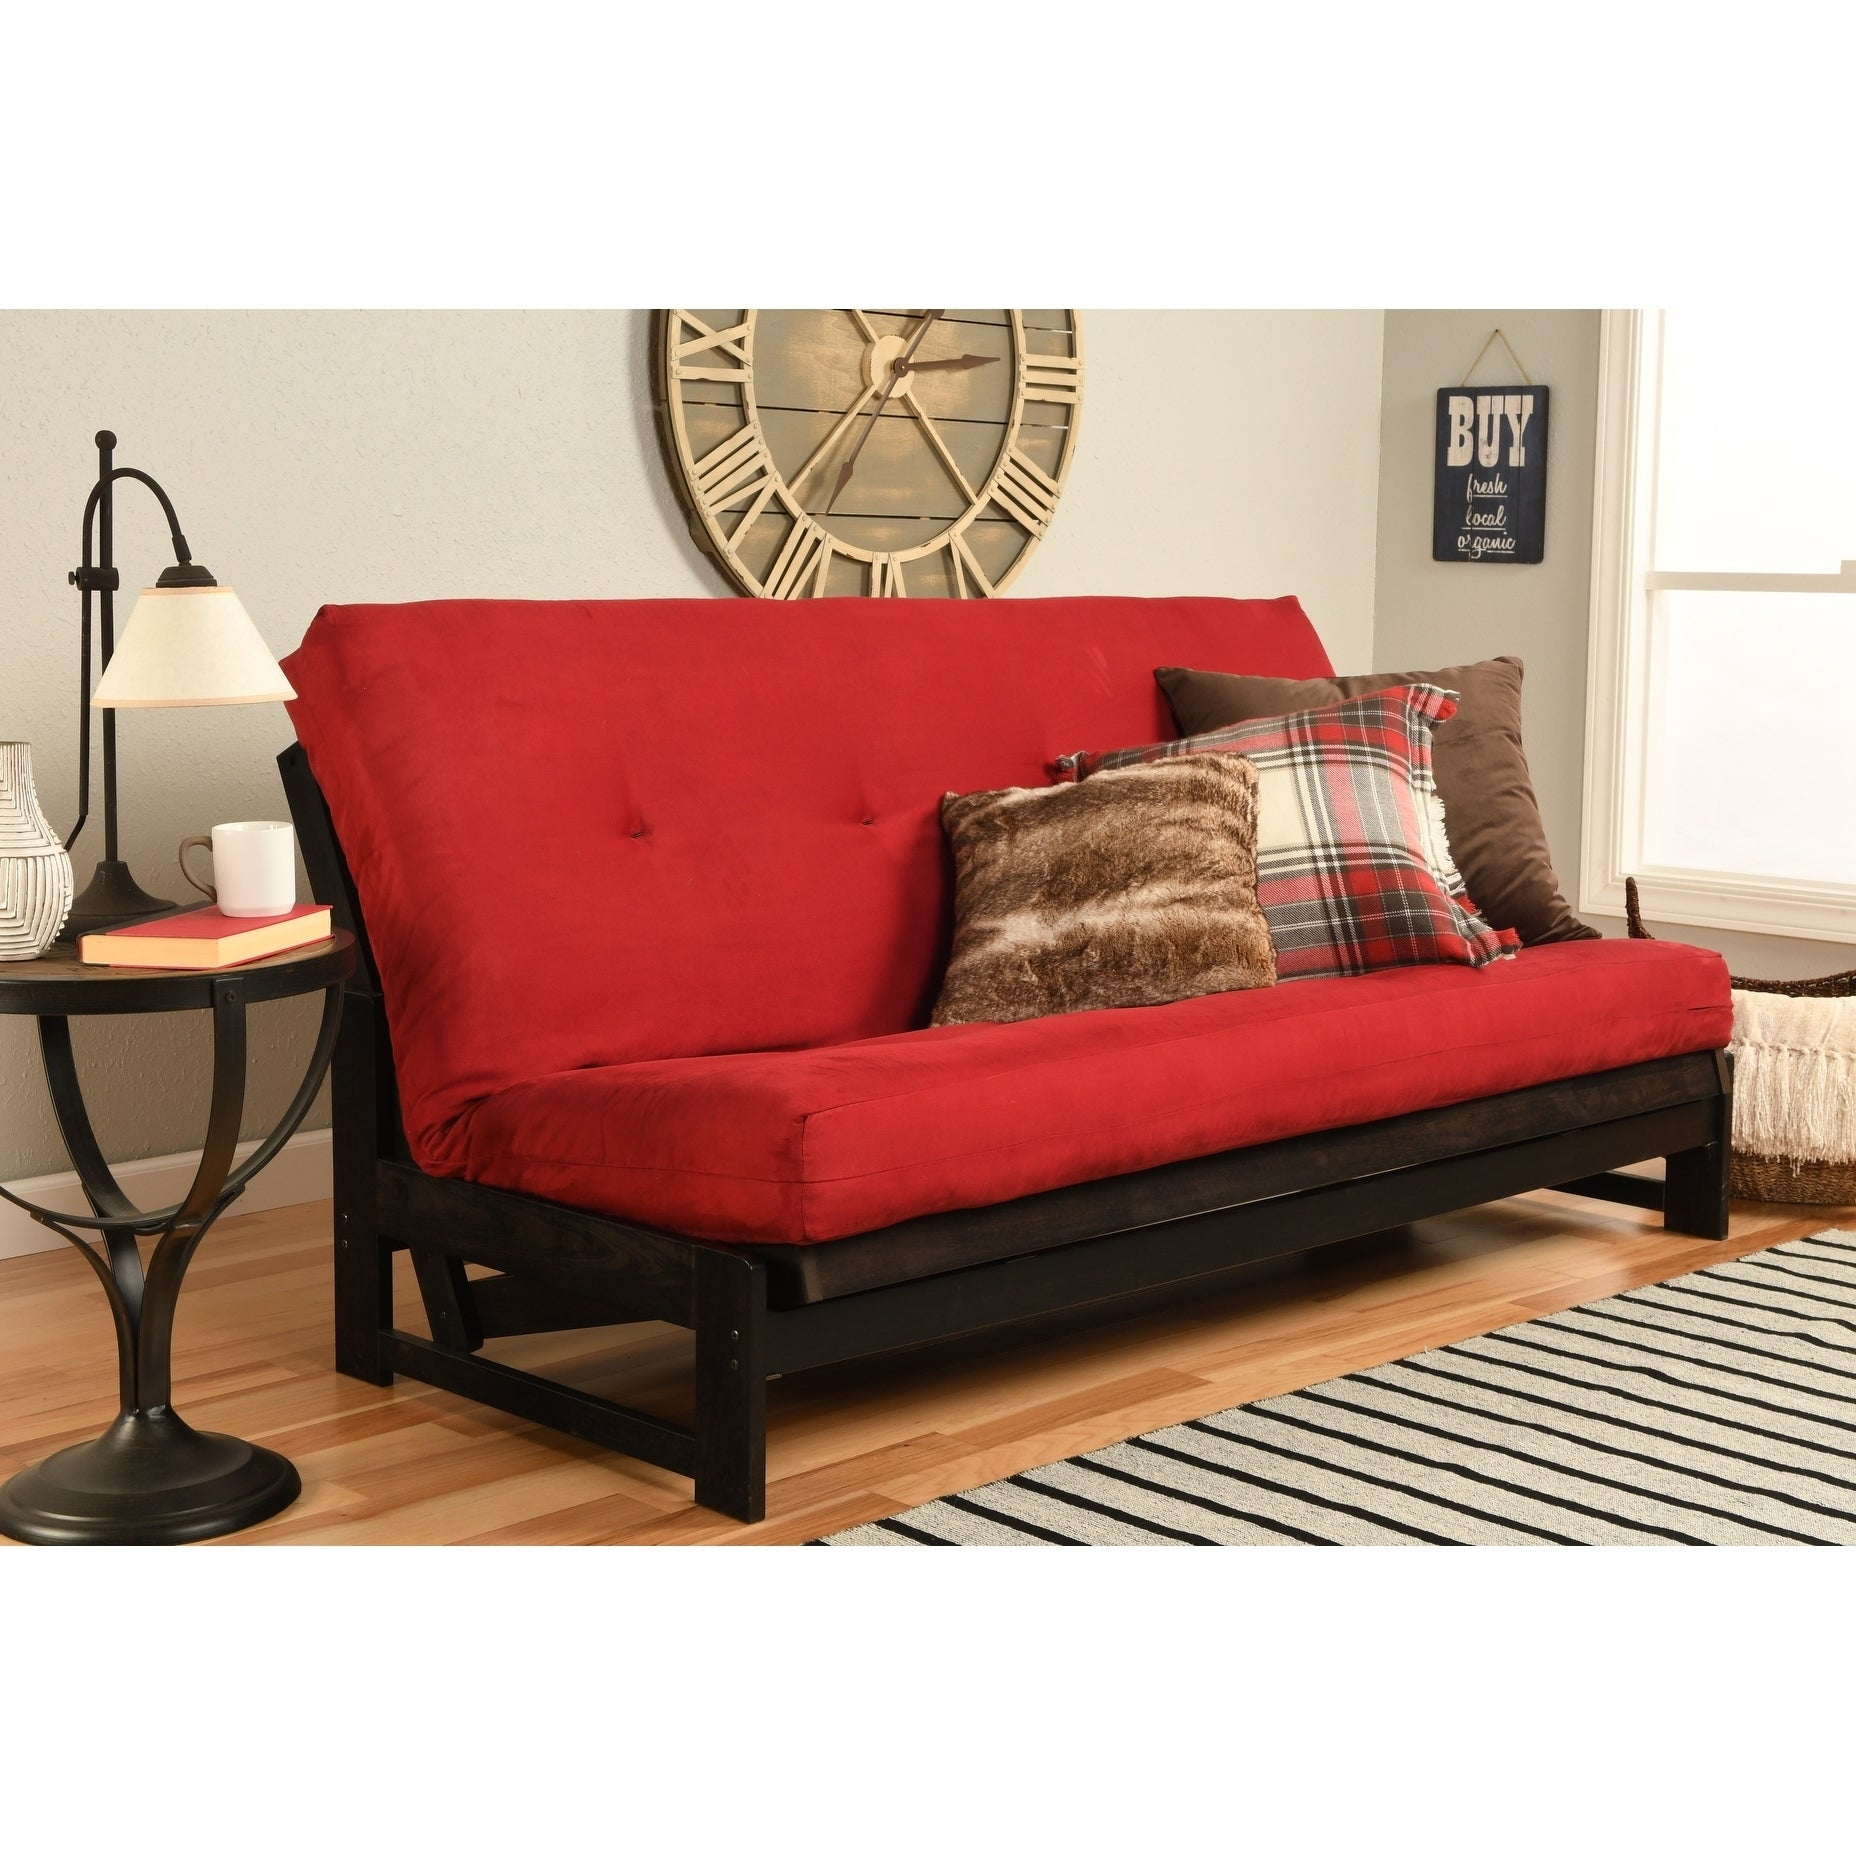 lady time dorm fall is futon room photo perfect the s blog futons for